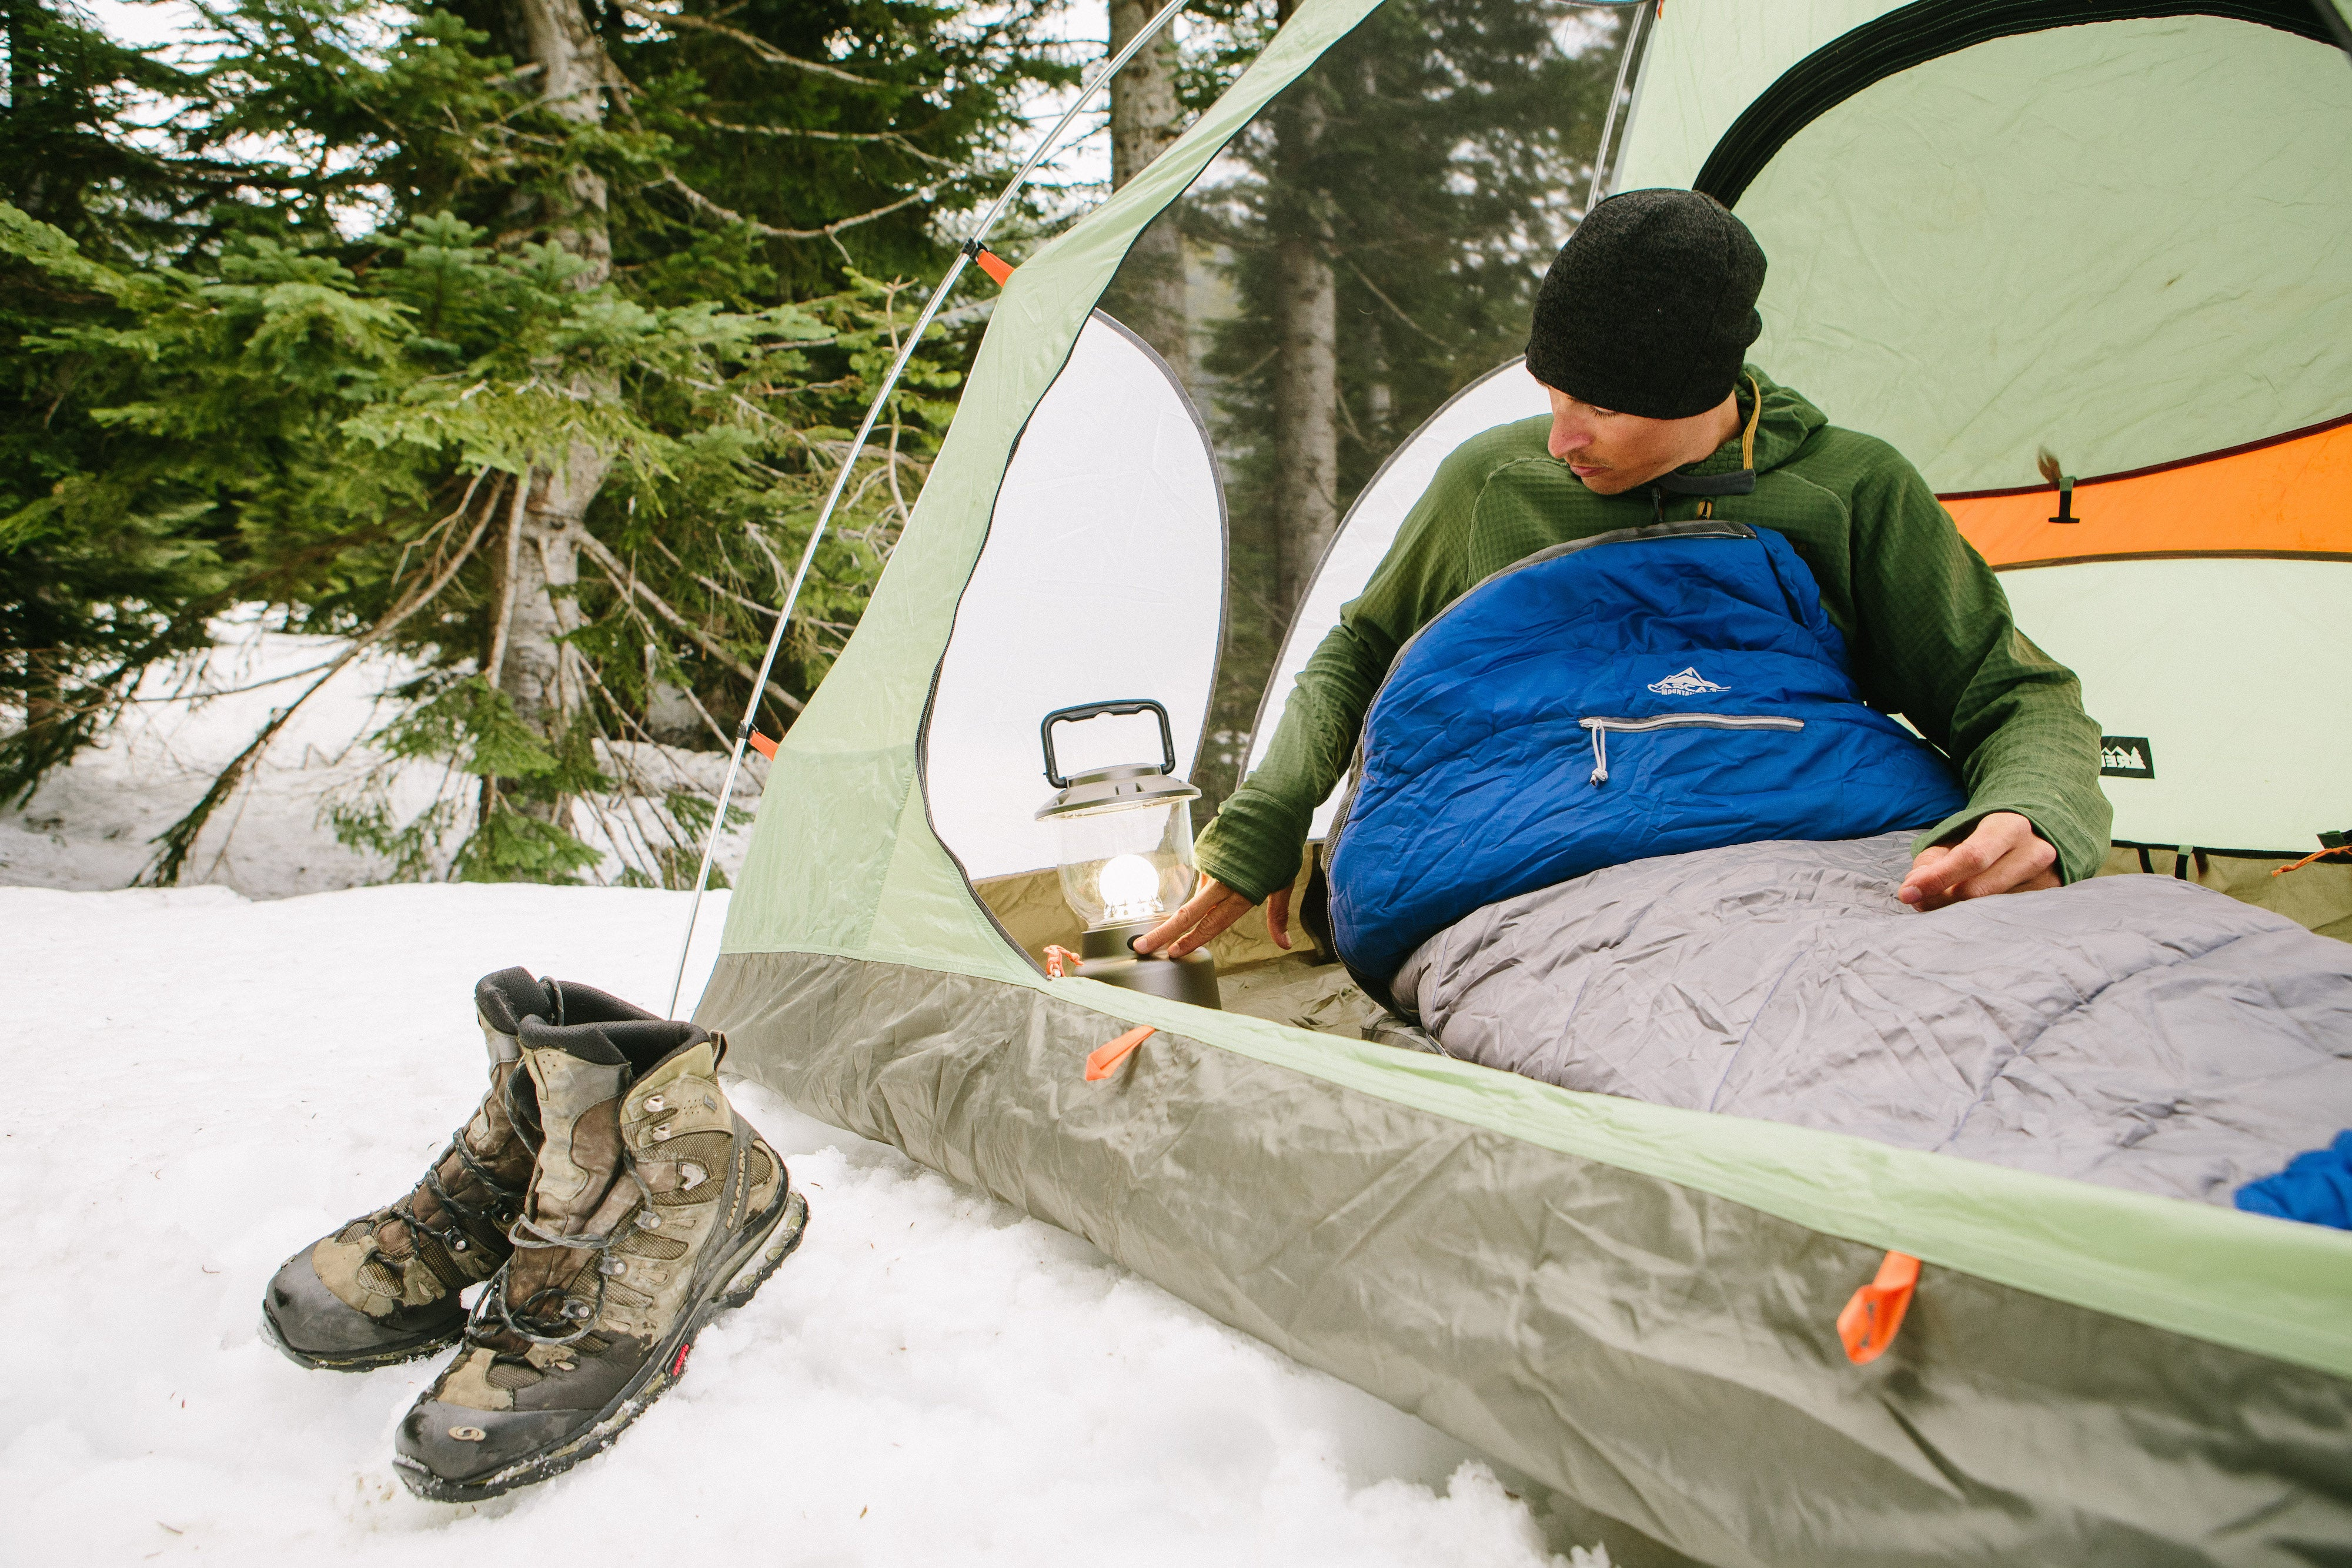 Winter Camping 101: How to Camp in the Snowy Months - Snow Camping